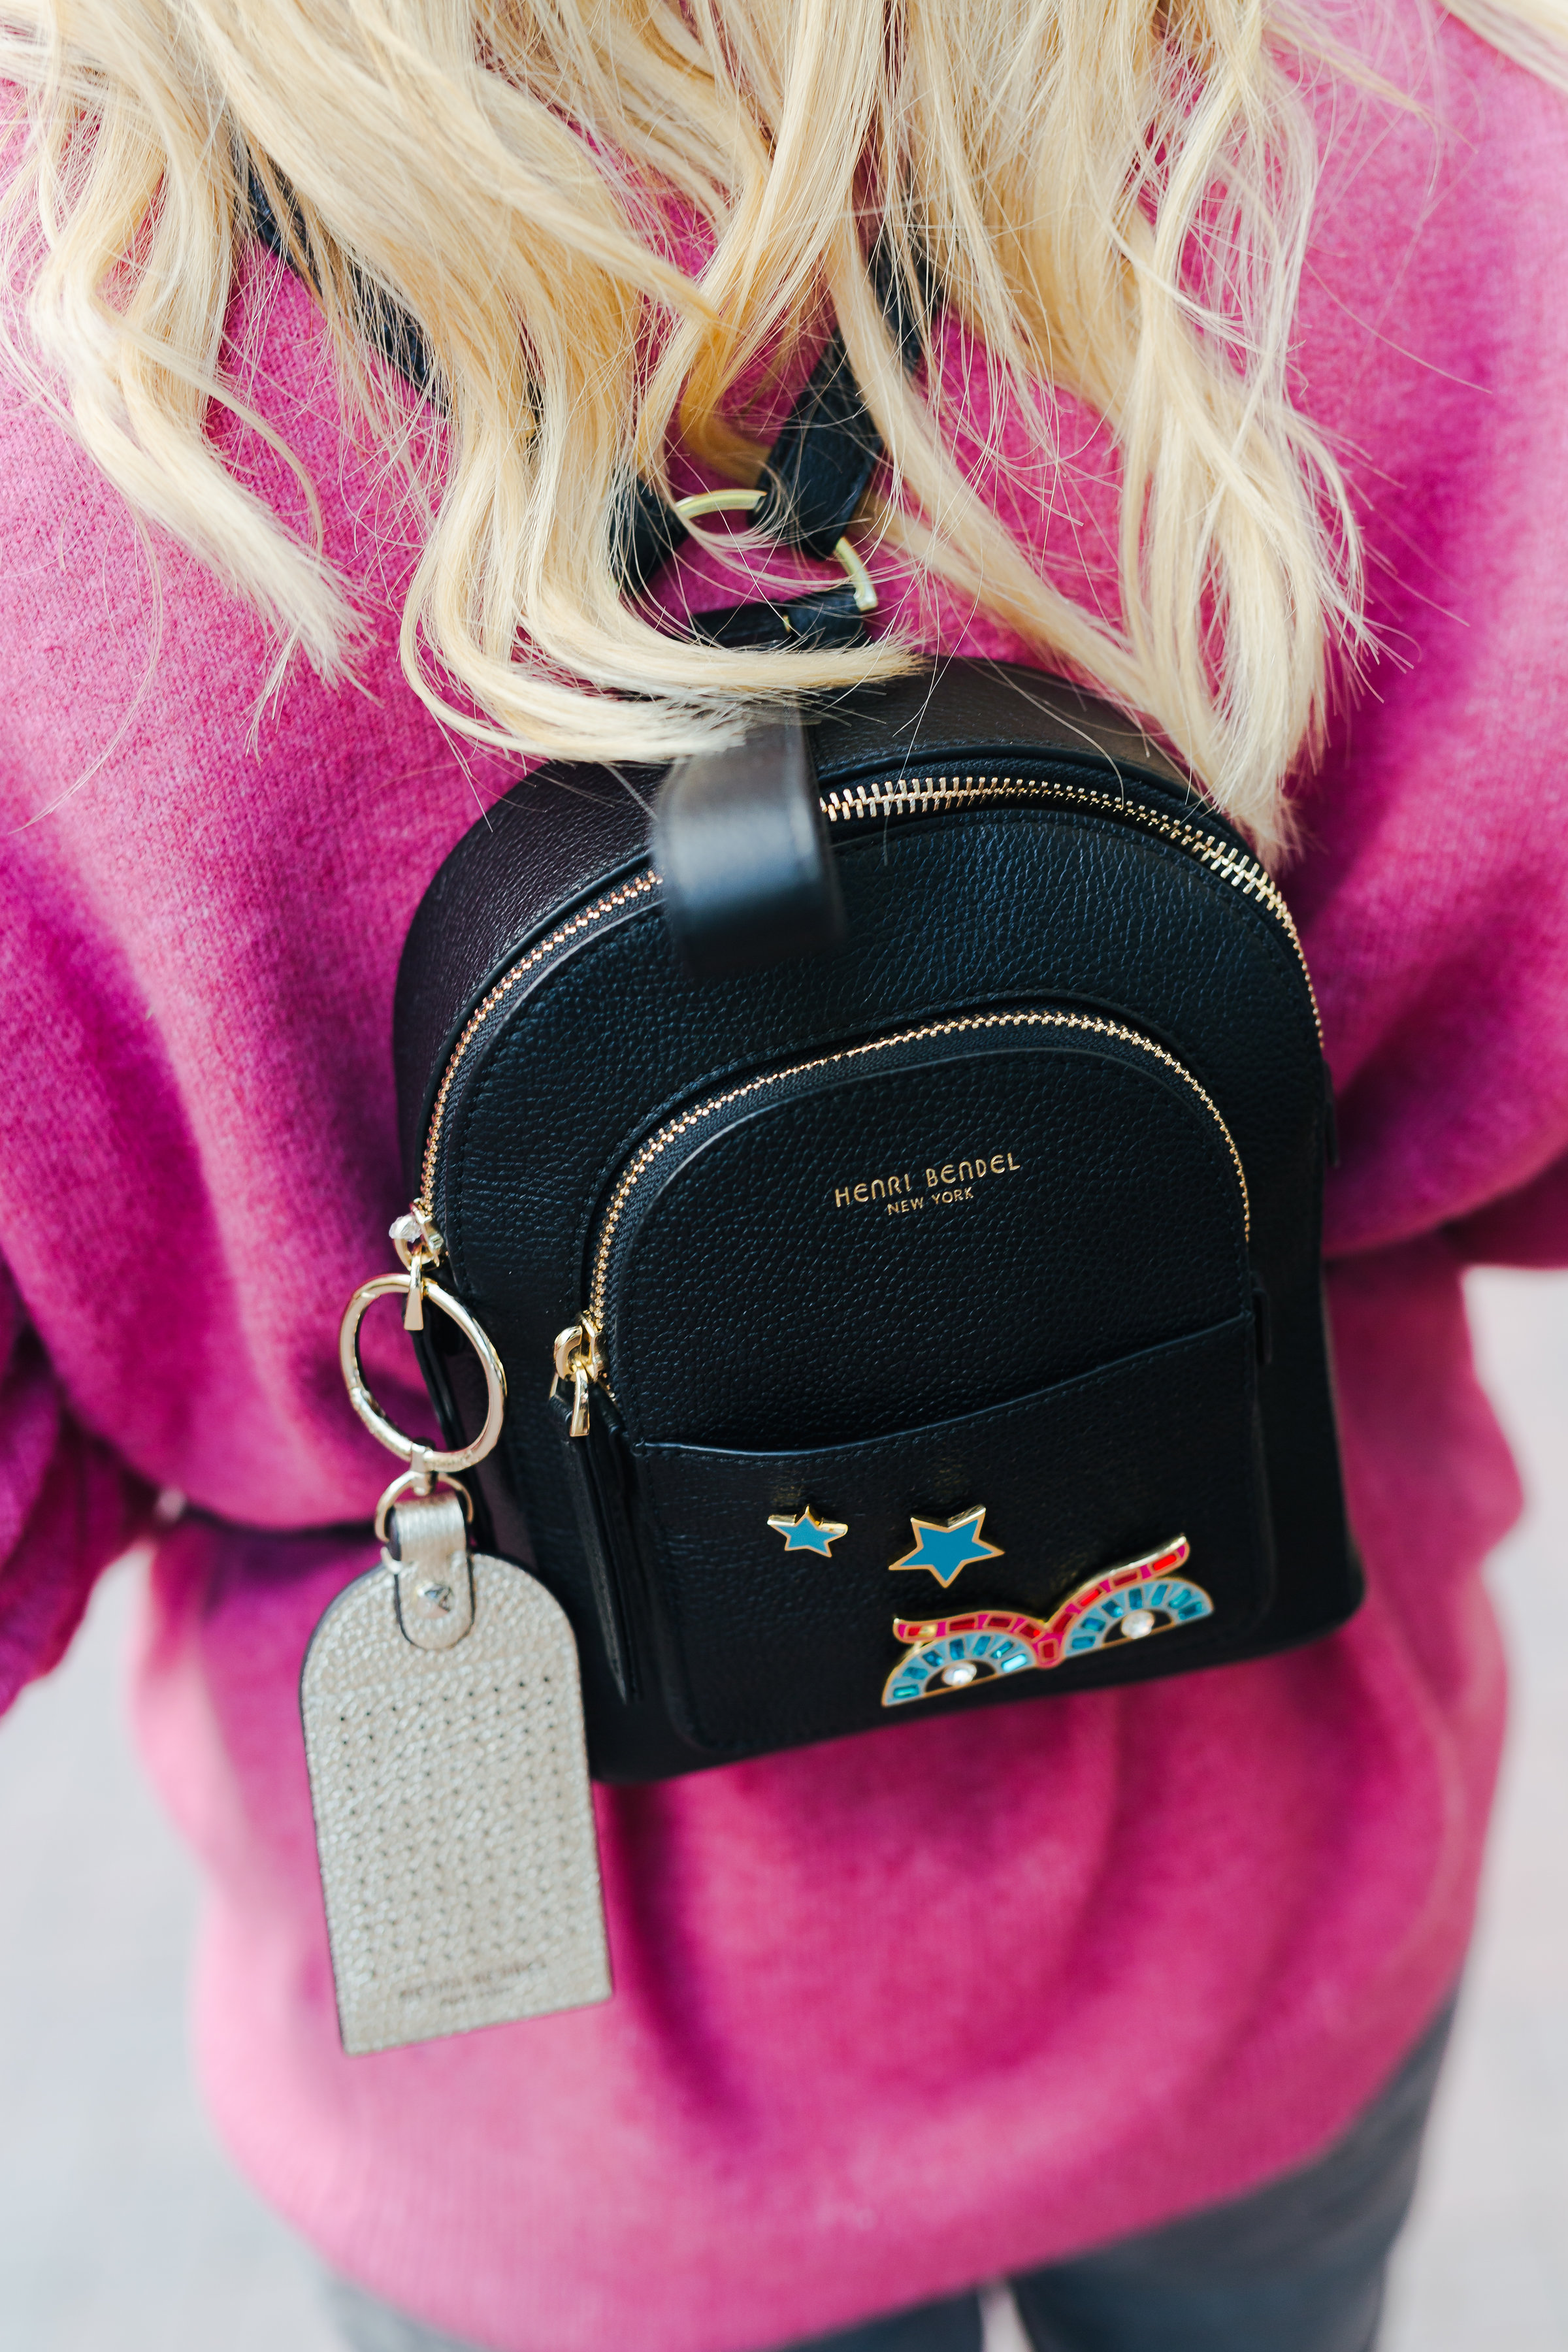 ca569d2a9 ... 5 Reasons I Obsess over Henri Bendel Bags by San Francisco fashion  blogger For the Love